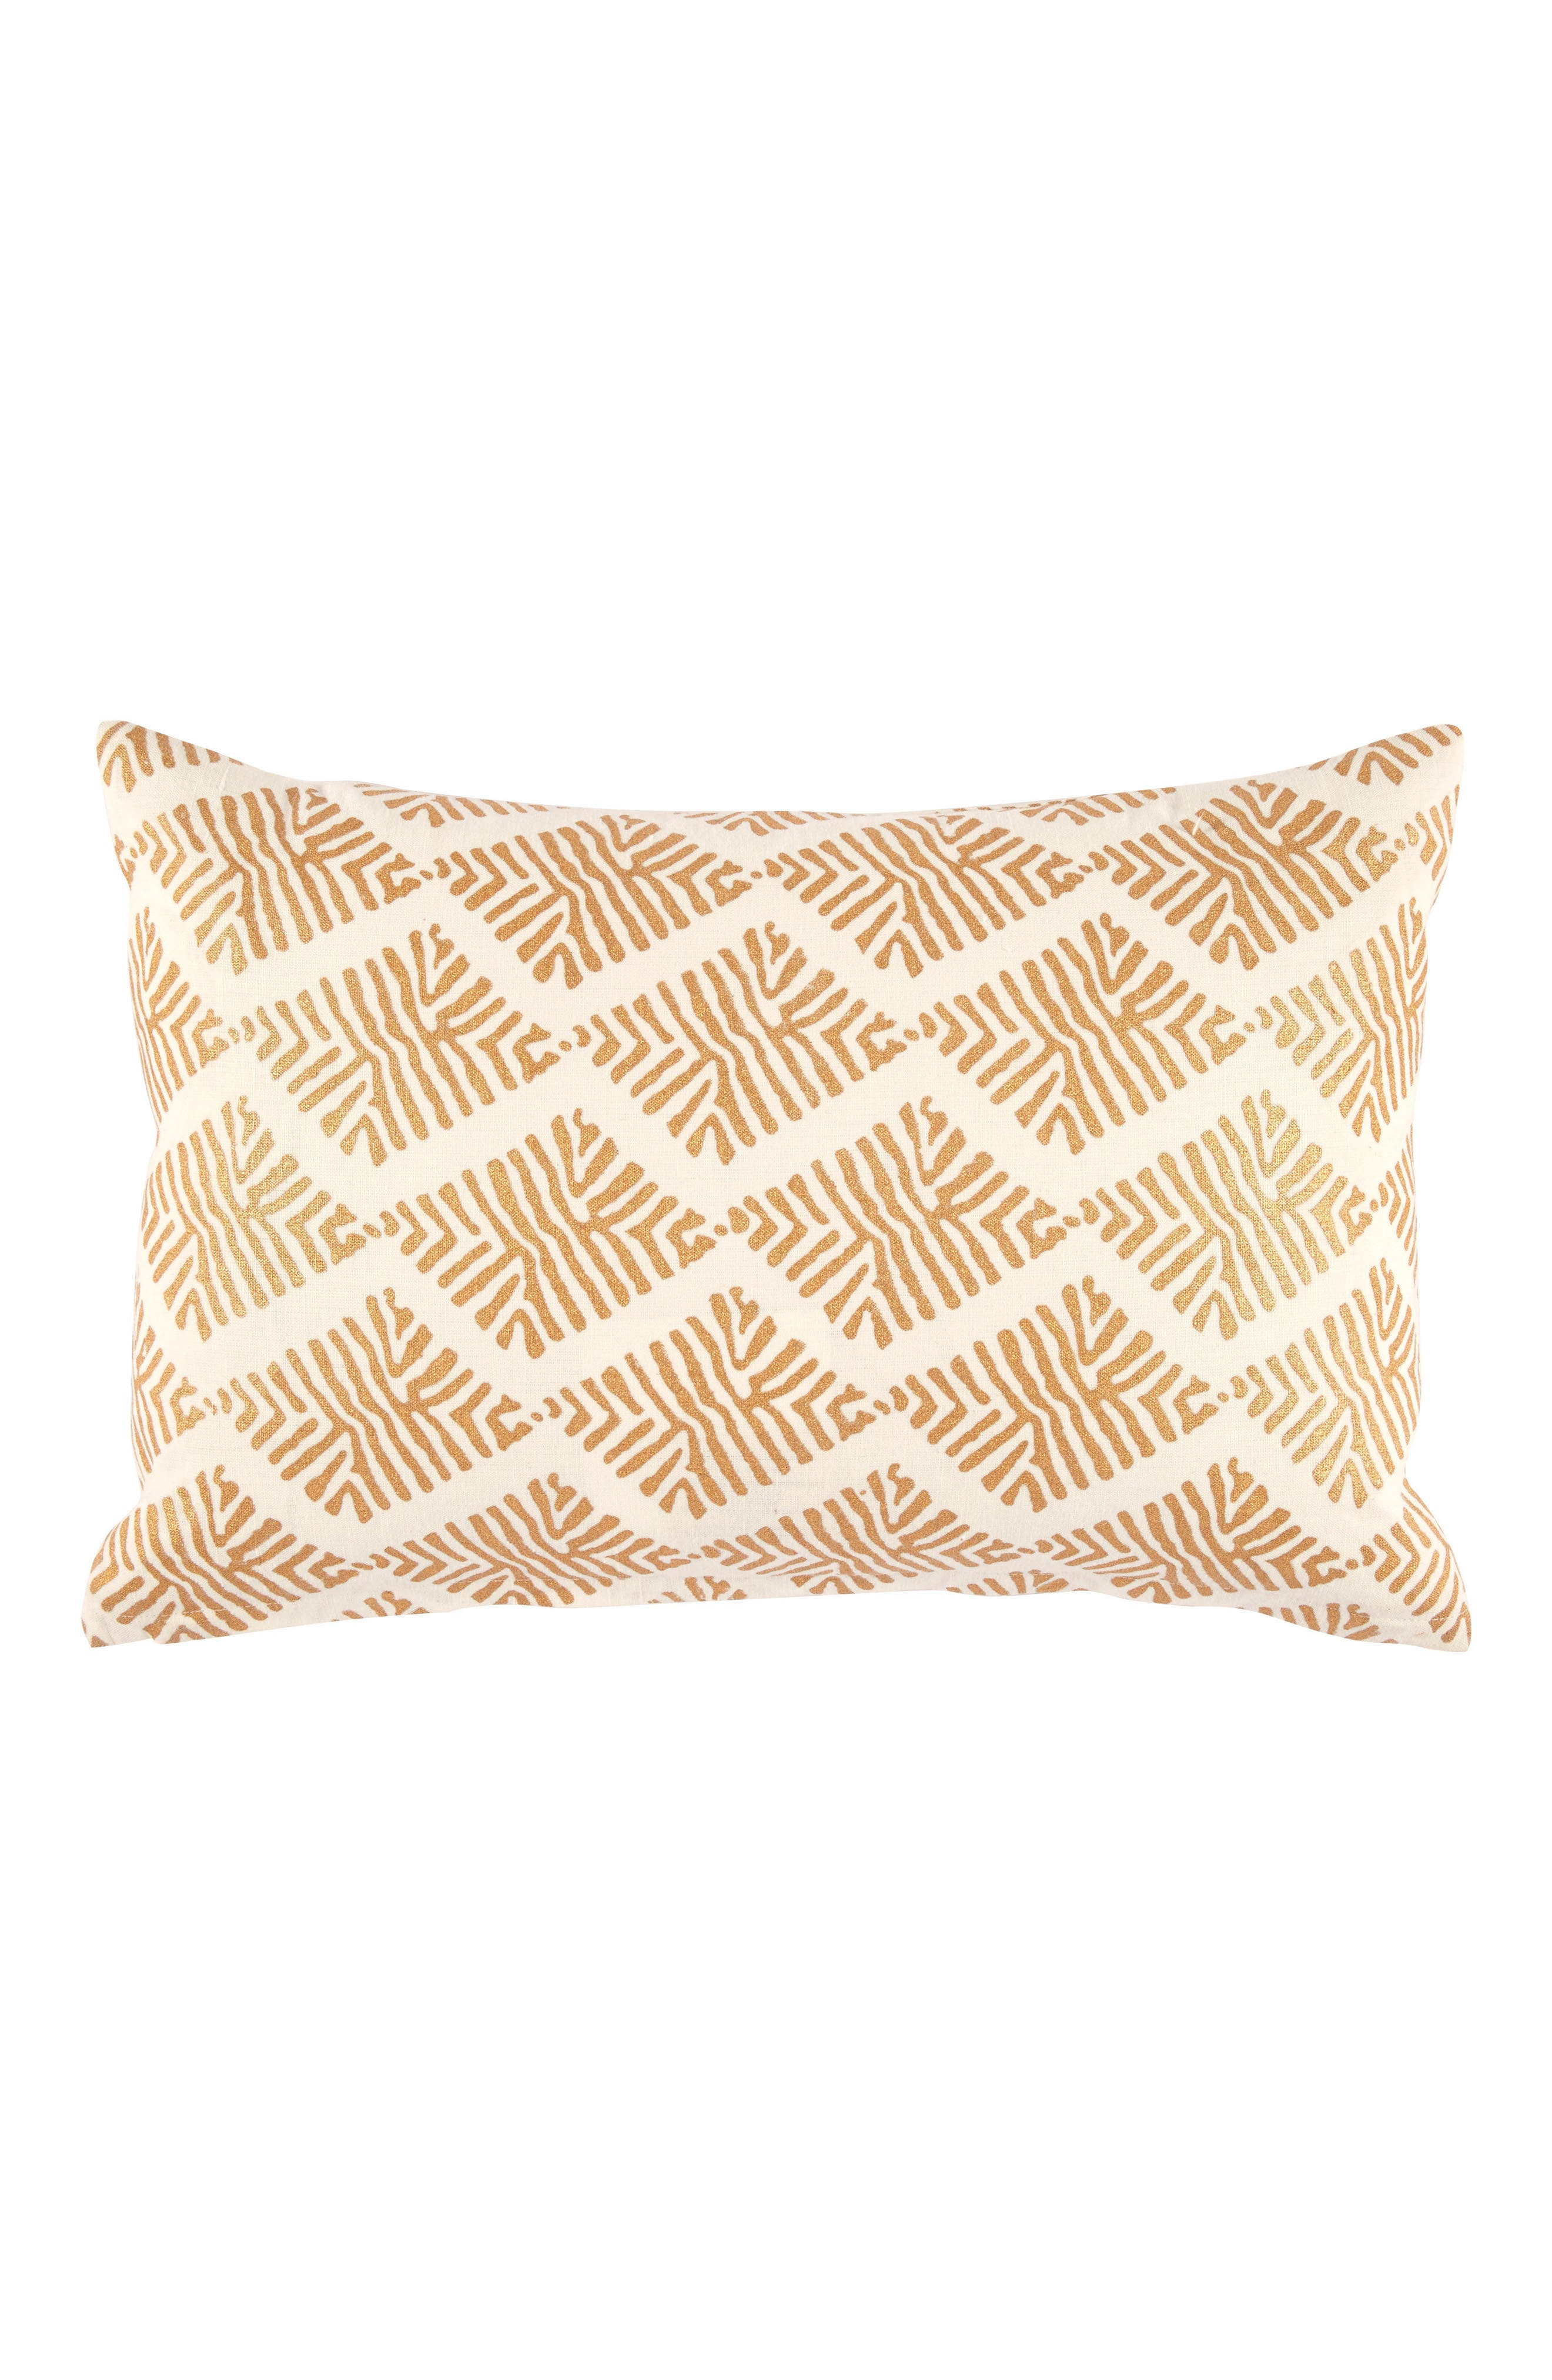 Sharak Accent Pillow,                             Main thumbnail 1, color,                             White/ Gold